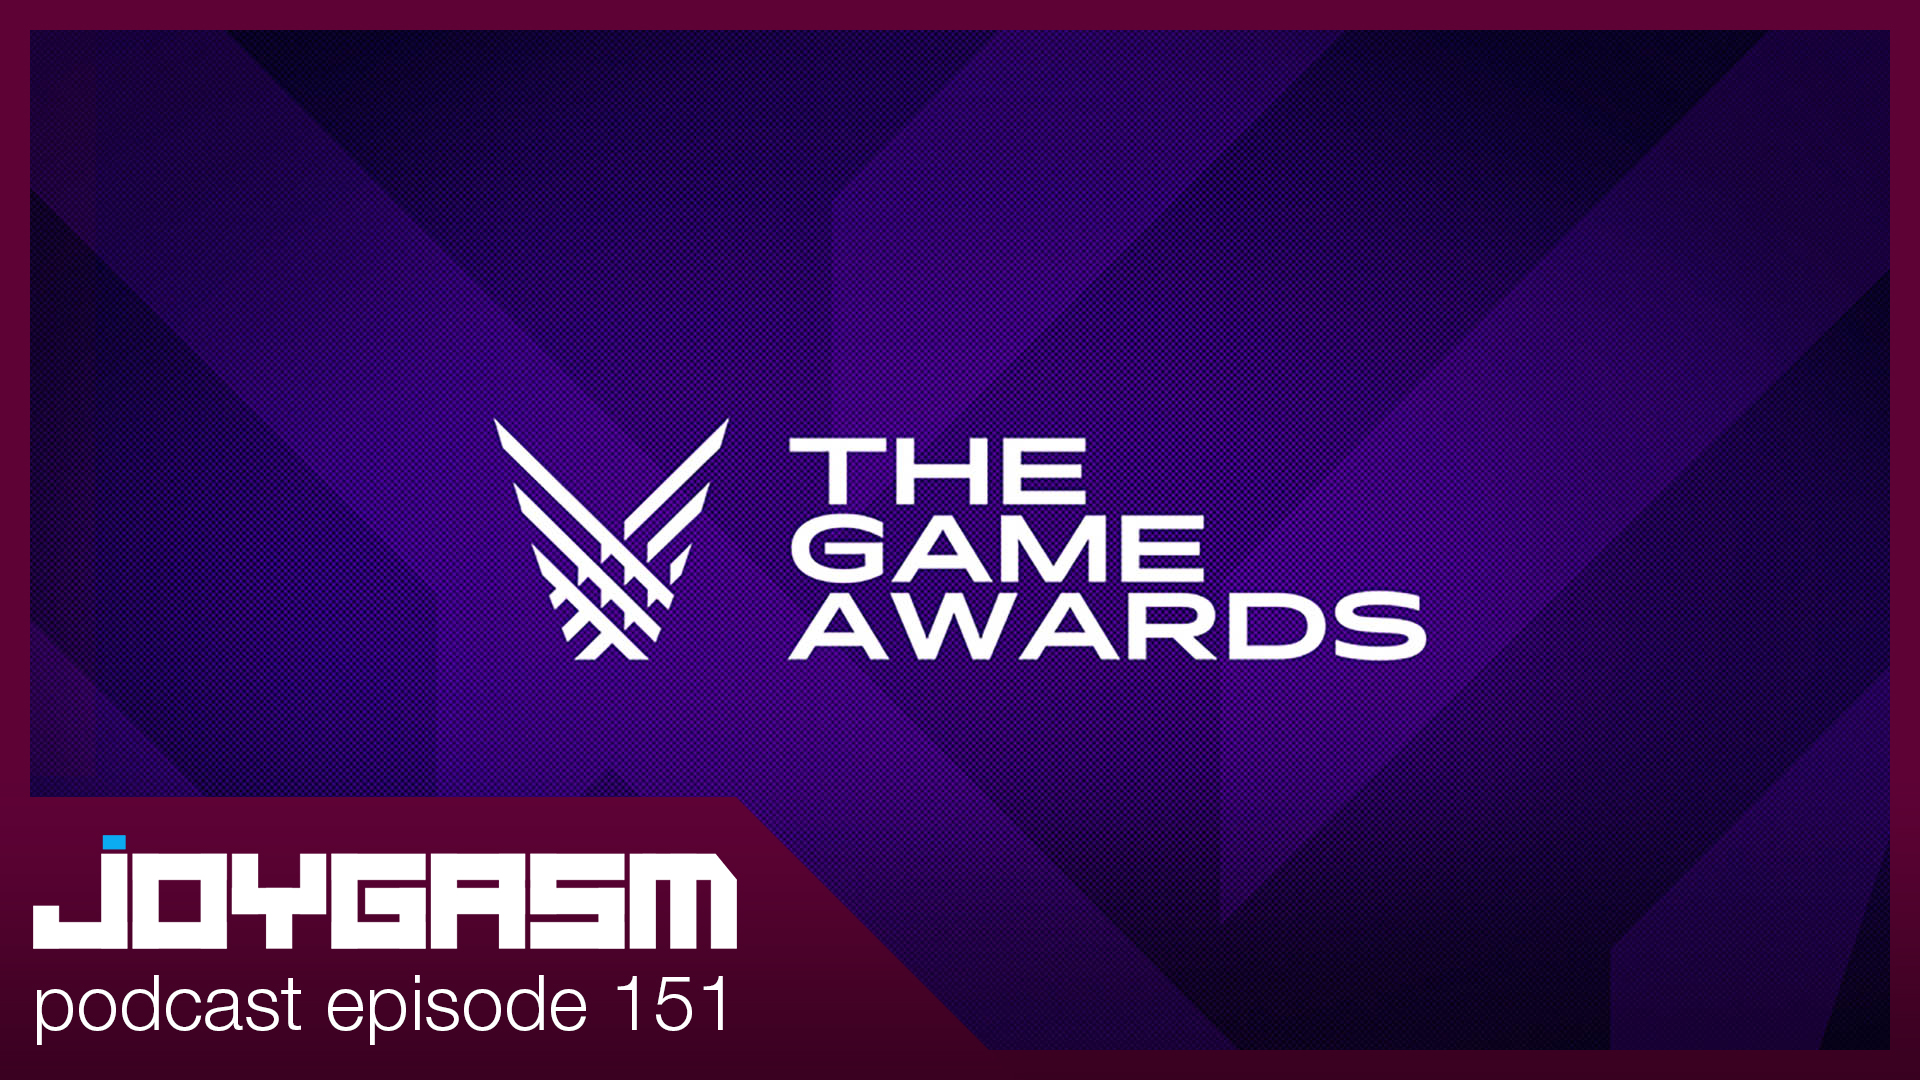 Ep. 151: The Game Awards & Our Favorite Games of 2019